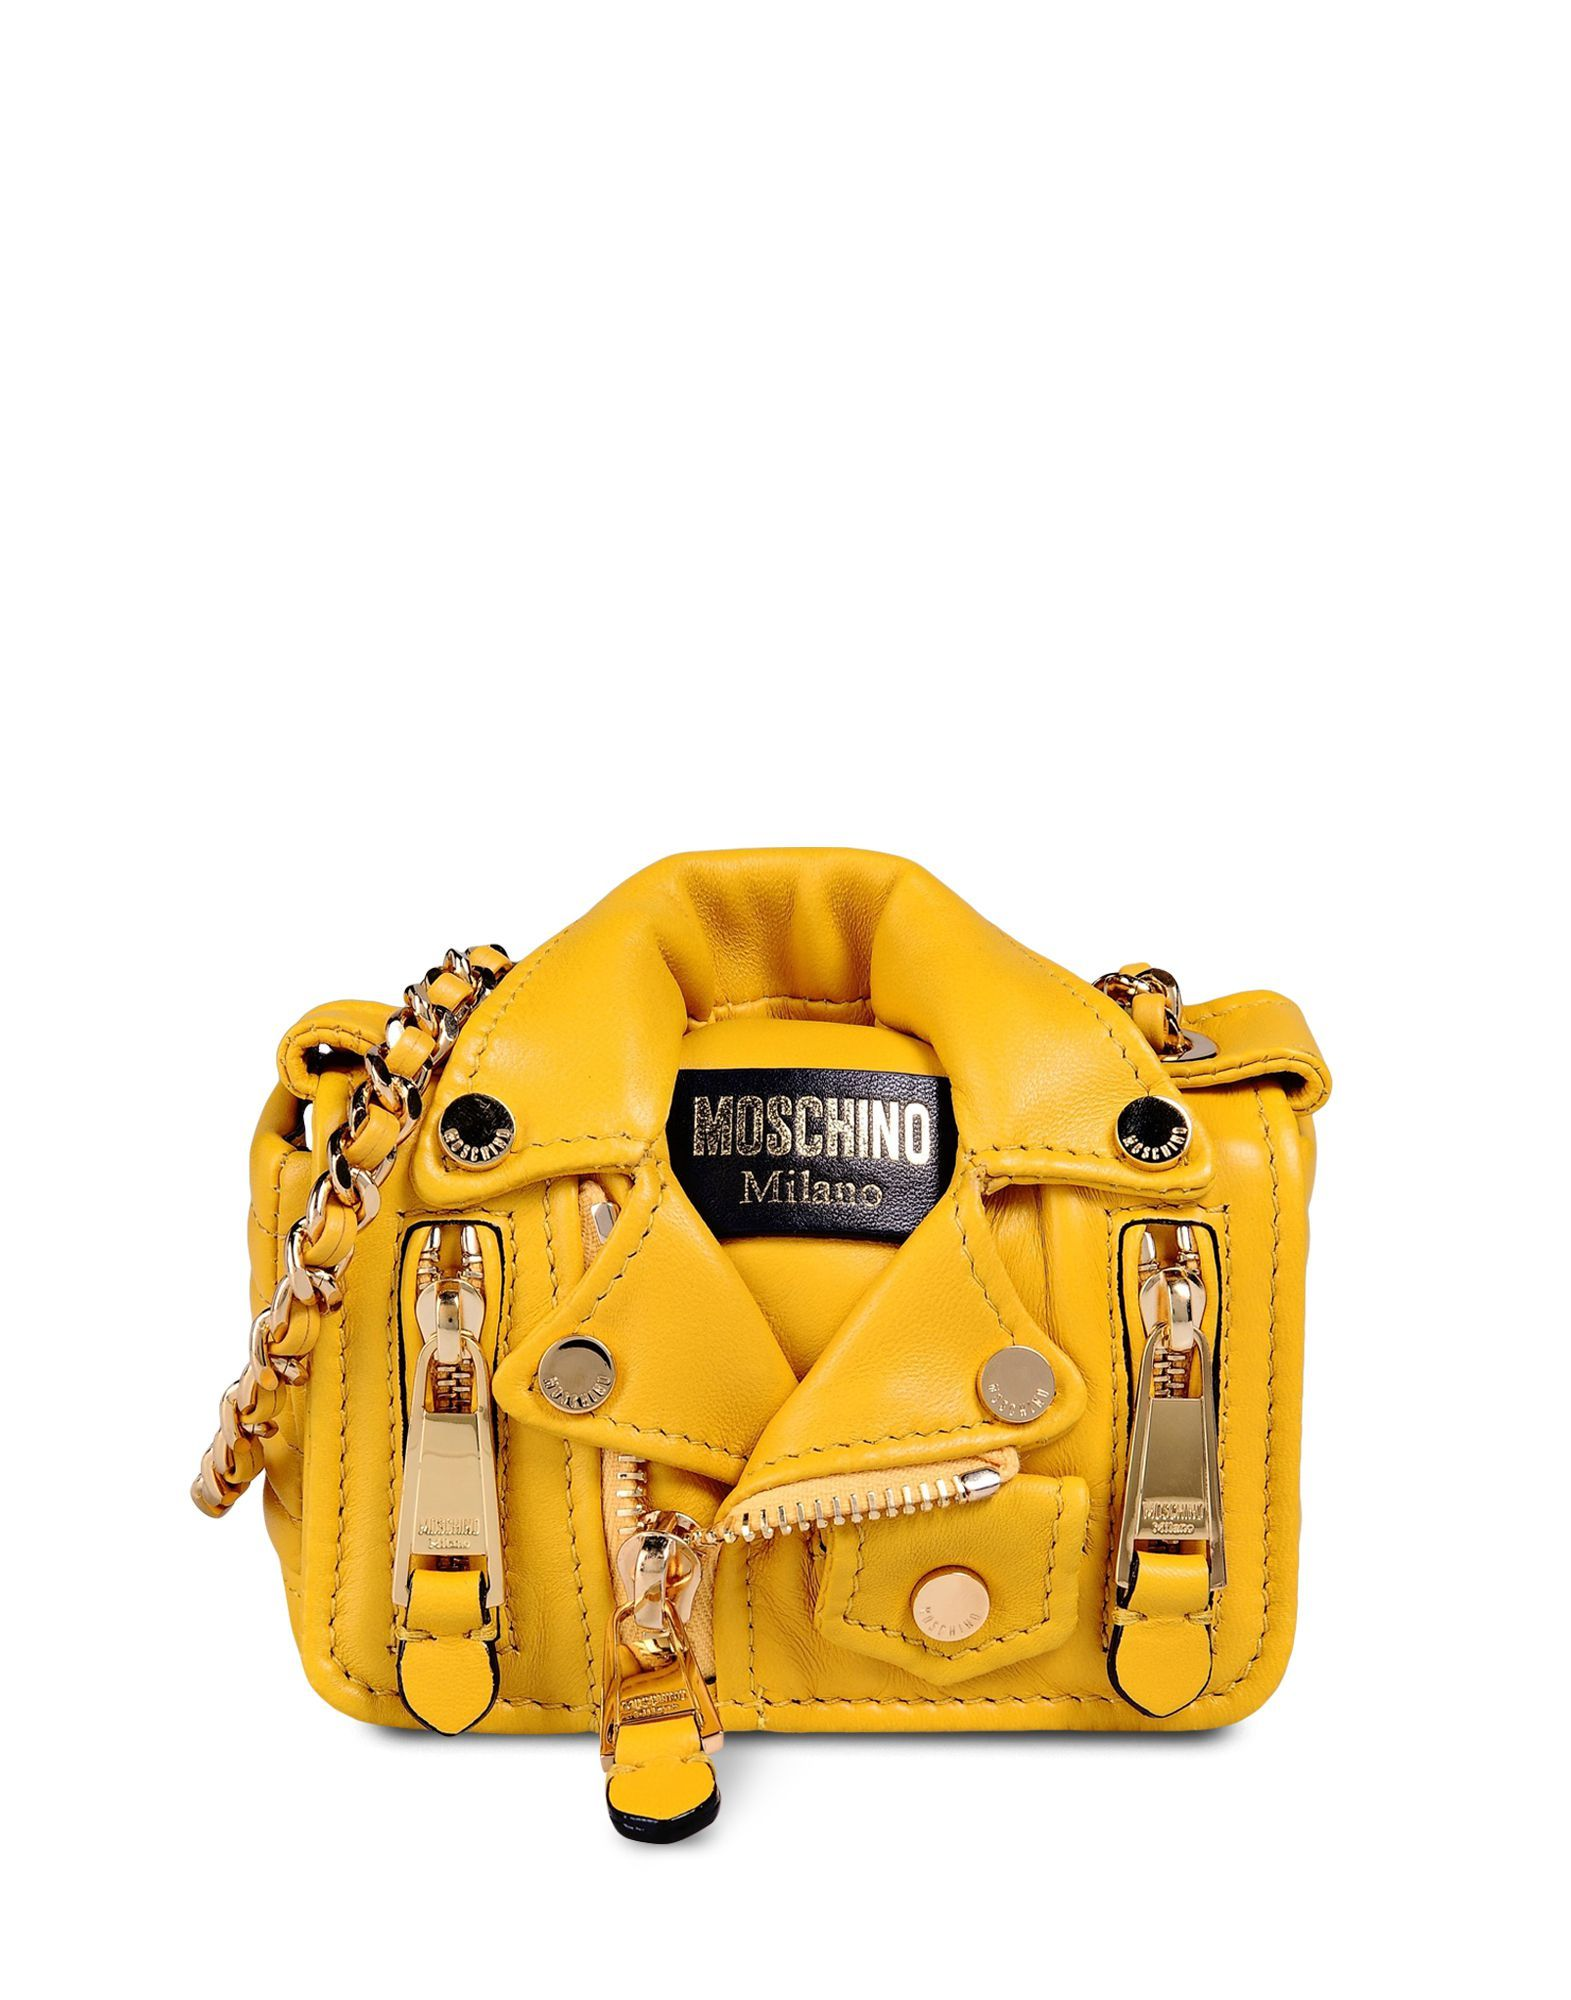 846bc0299 this is a purse that costs $1265 dollars of real money and looks like a  tiny yellow leather jacket.